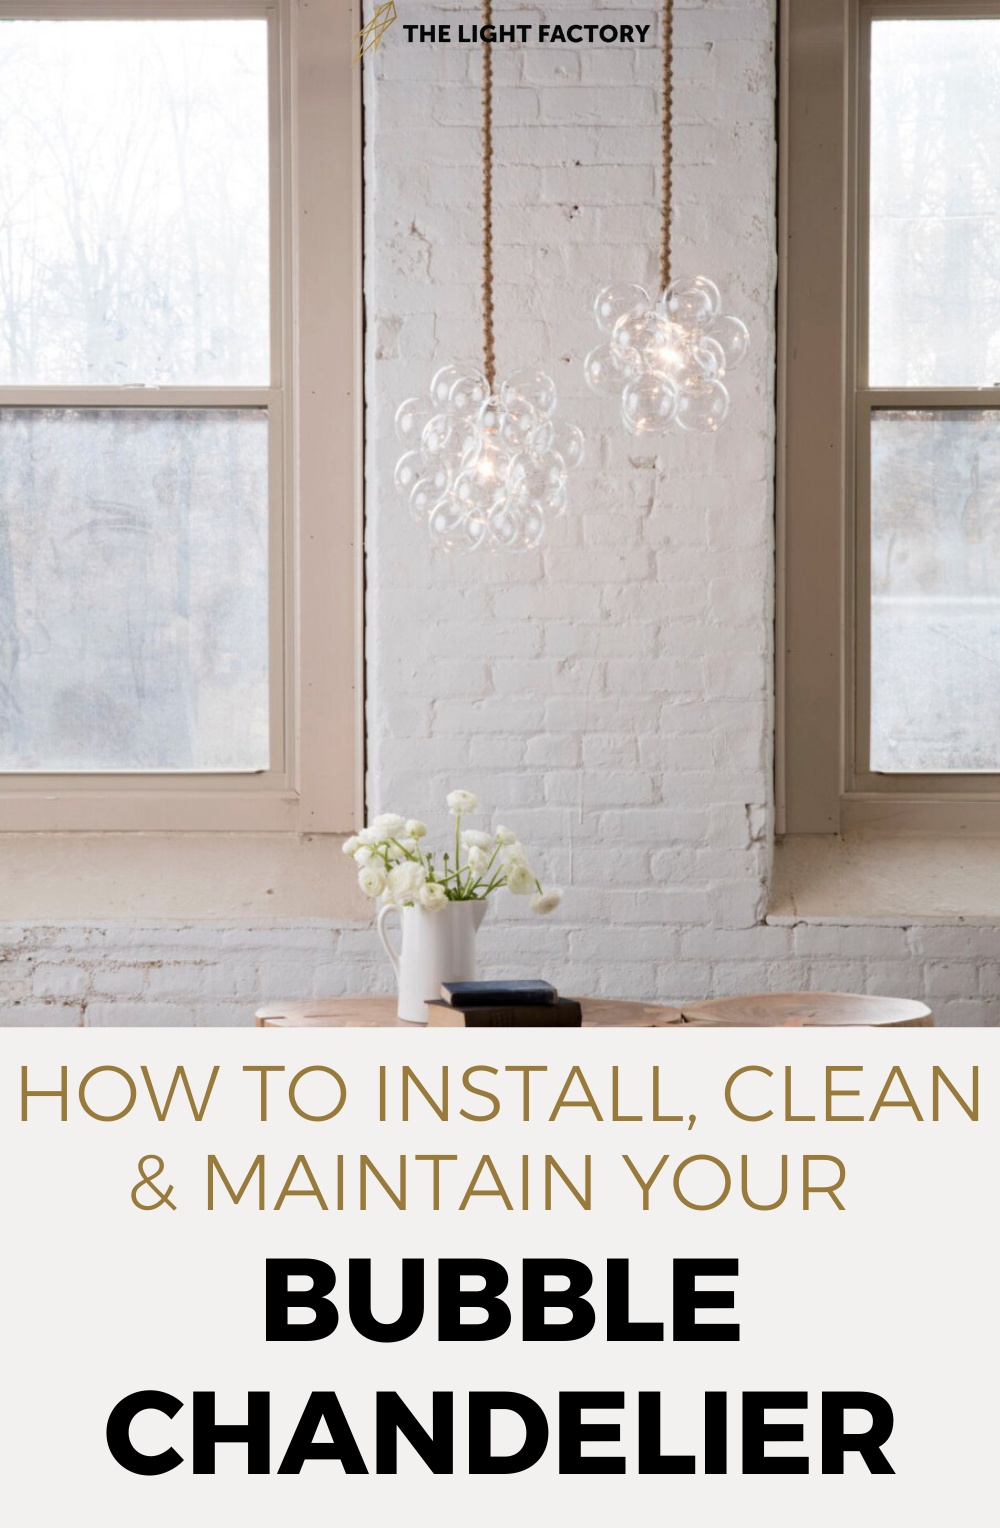 A bubble light fixture from The Light Factory does so much more than provide light. Even when it's not switched on, it's art: a stylish statement piece. Here's how to install, clean, and maintain your chandelier. #howtoinstalllightfixtures #lightingfixtureideas #glasschandeliers #uniquelightingfixtures #midcenturylighting #midcenturylightfixtures #lightingideas